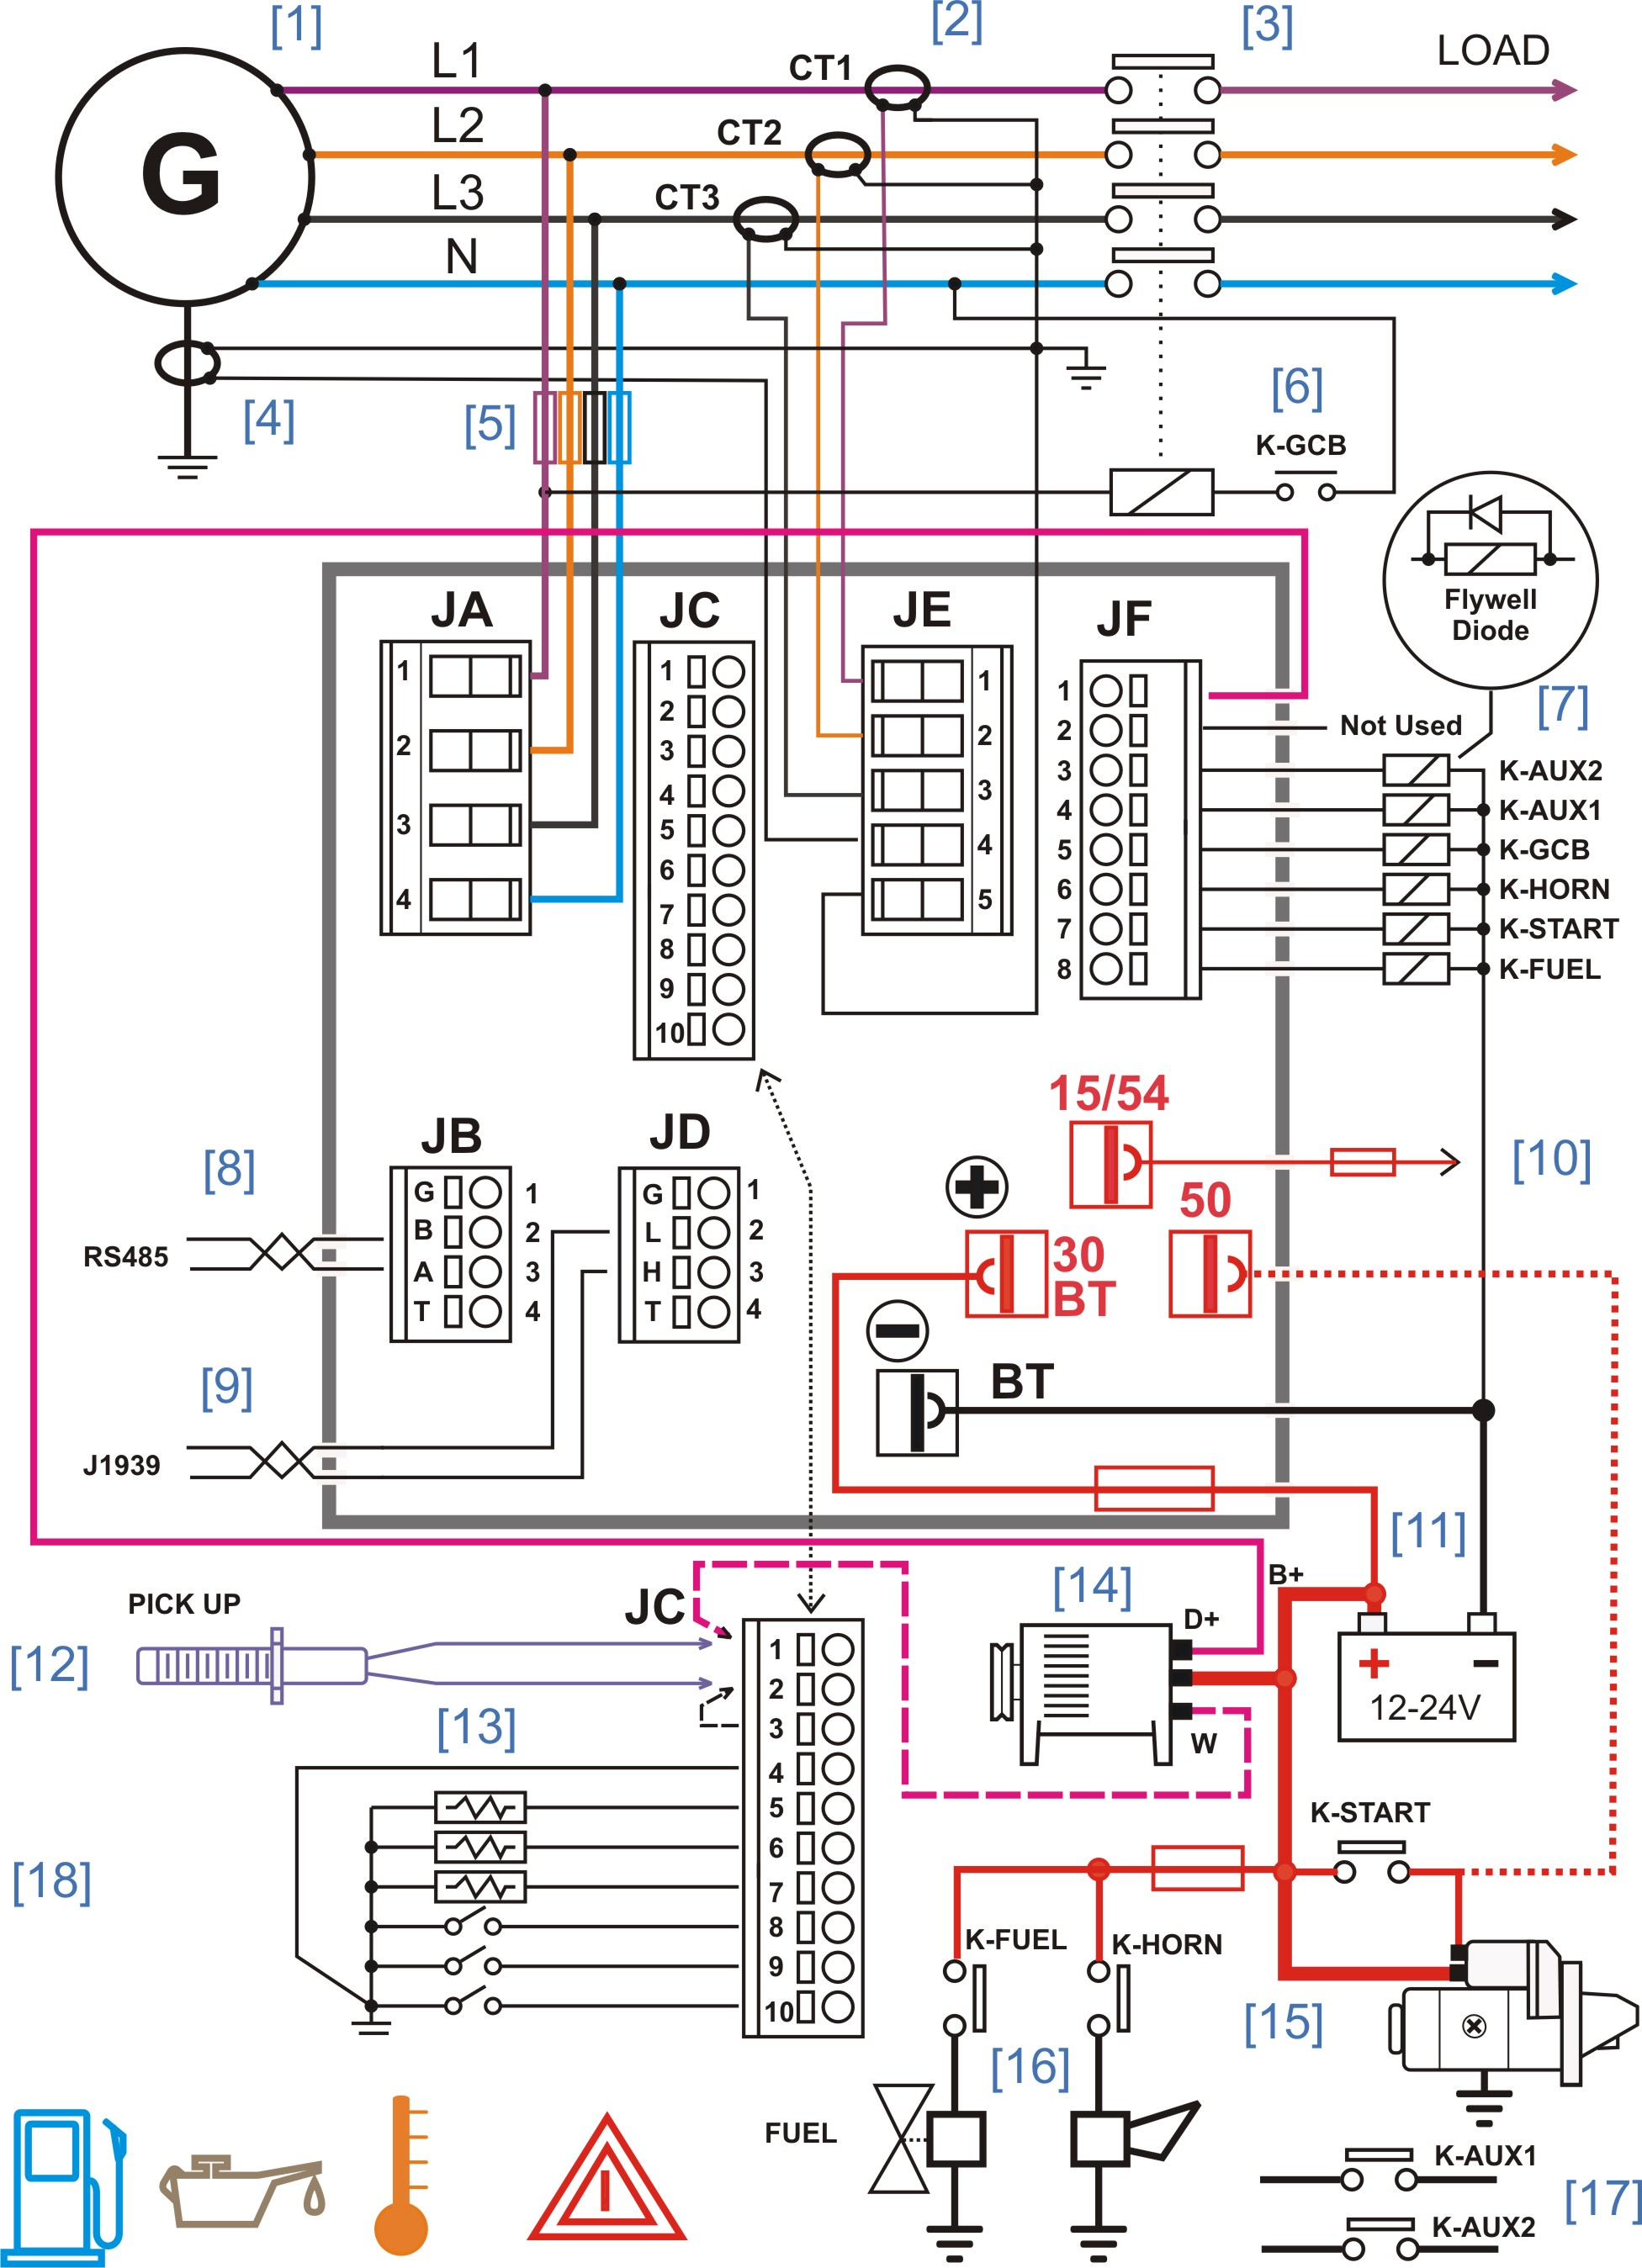 Diesel Generator Control Panel Wiring Diagram diesel generator control panel wiring diagram genset controller fire pump control panel wiring diagram pdf at soozxer.org